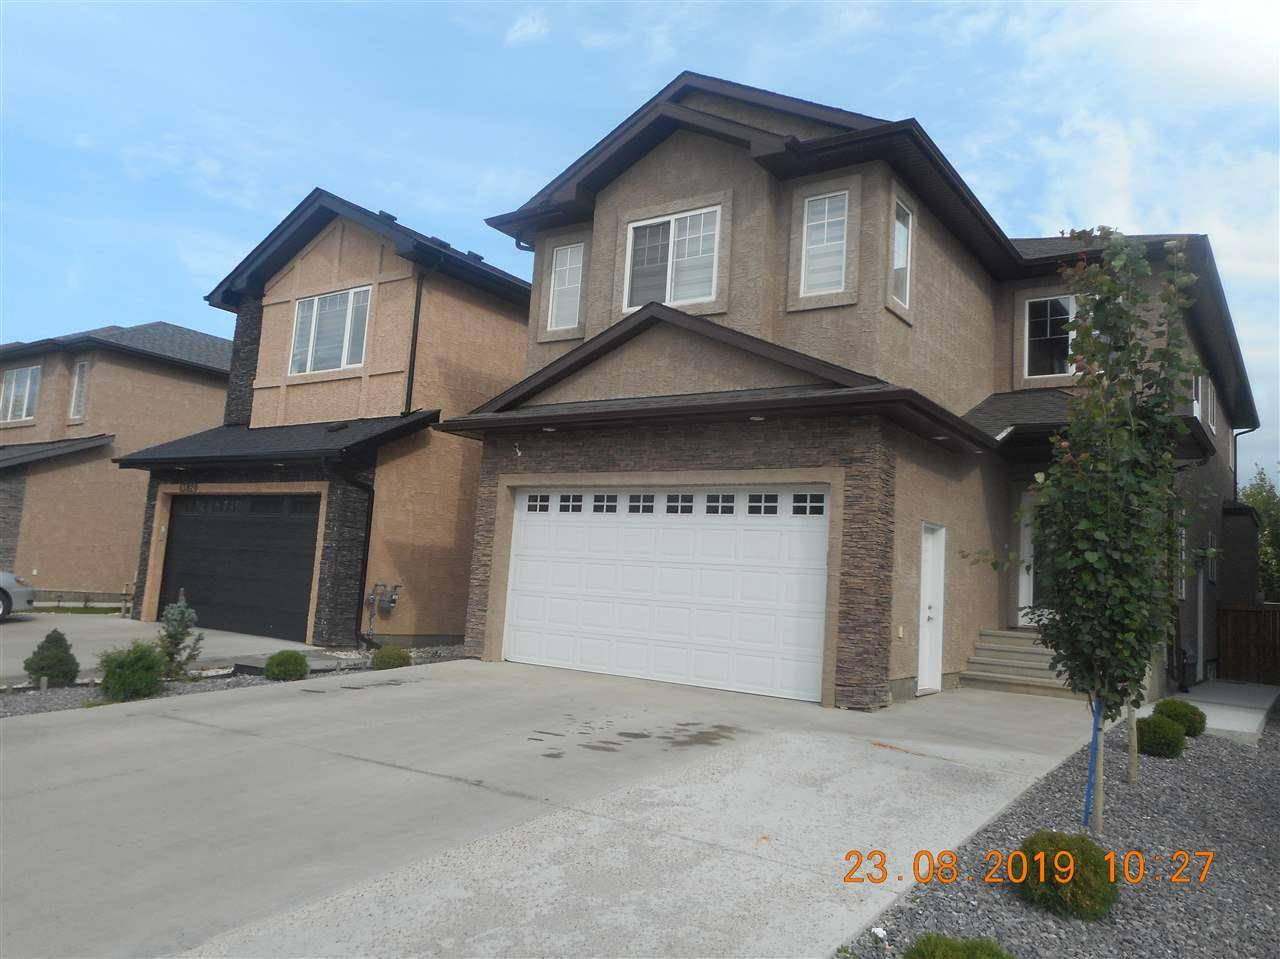 House for sale at 13816 163 Ave Nw Edmonton Alberta - MLS: E4171056